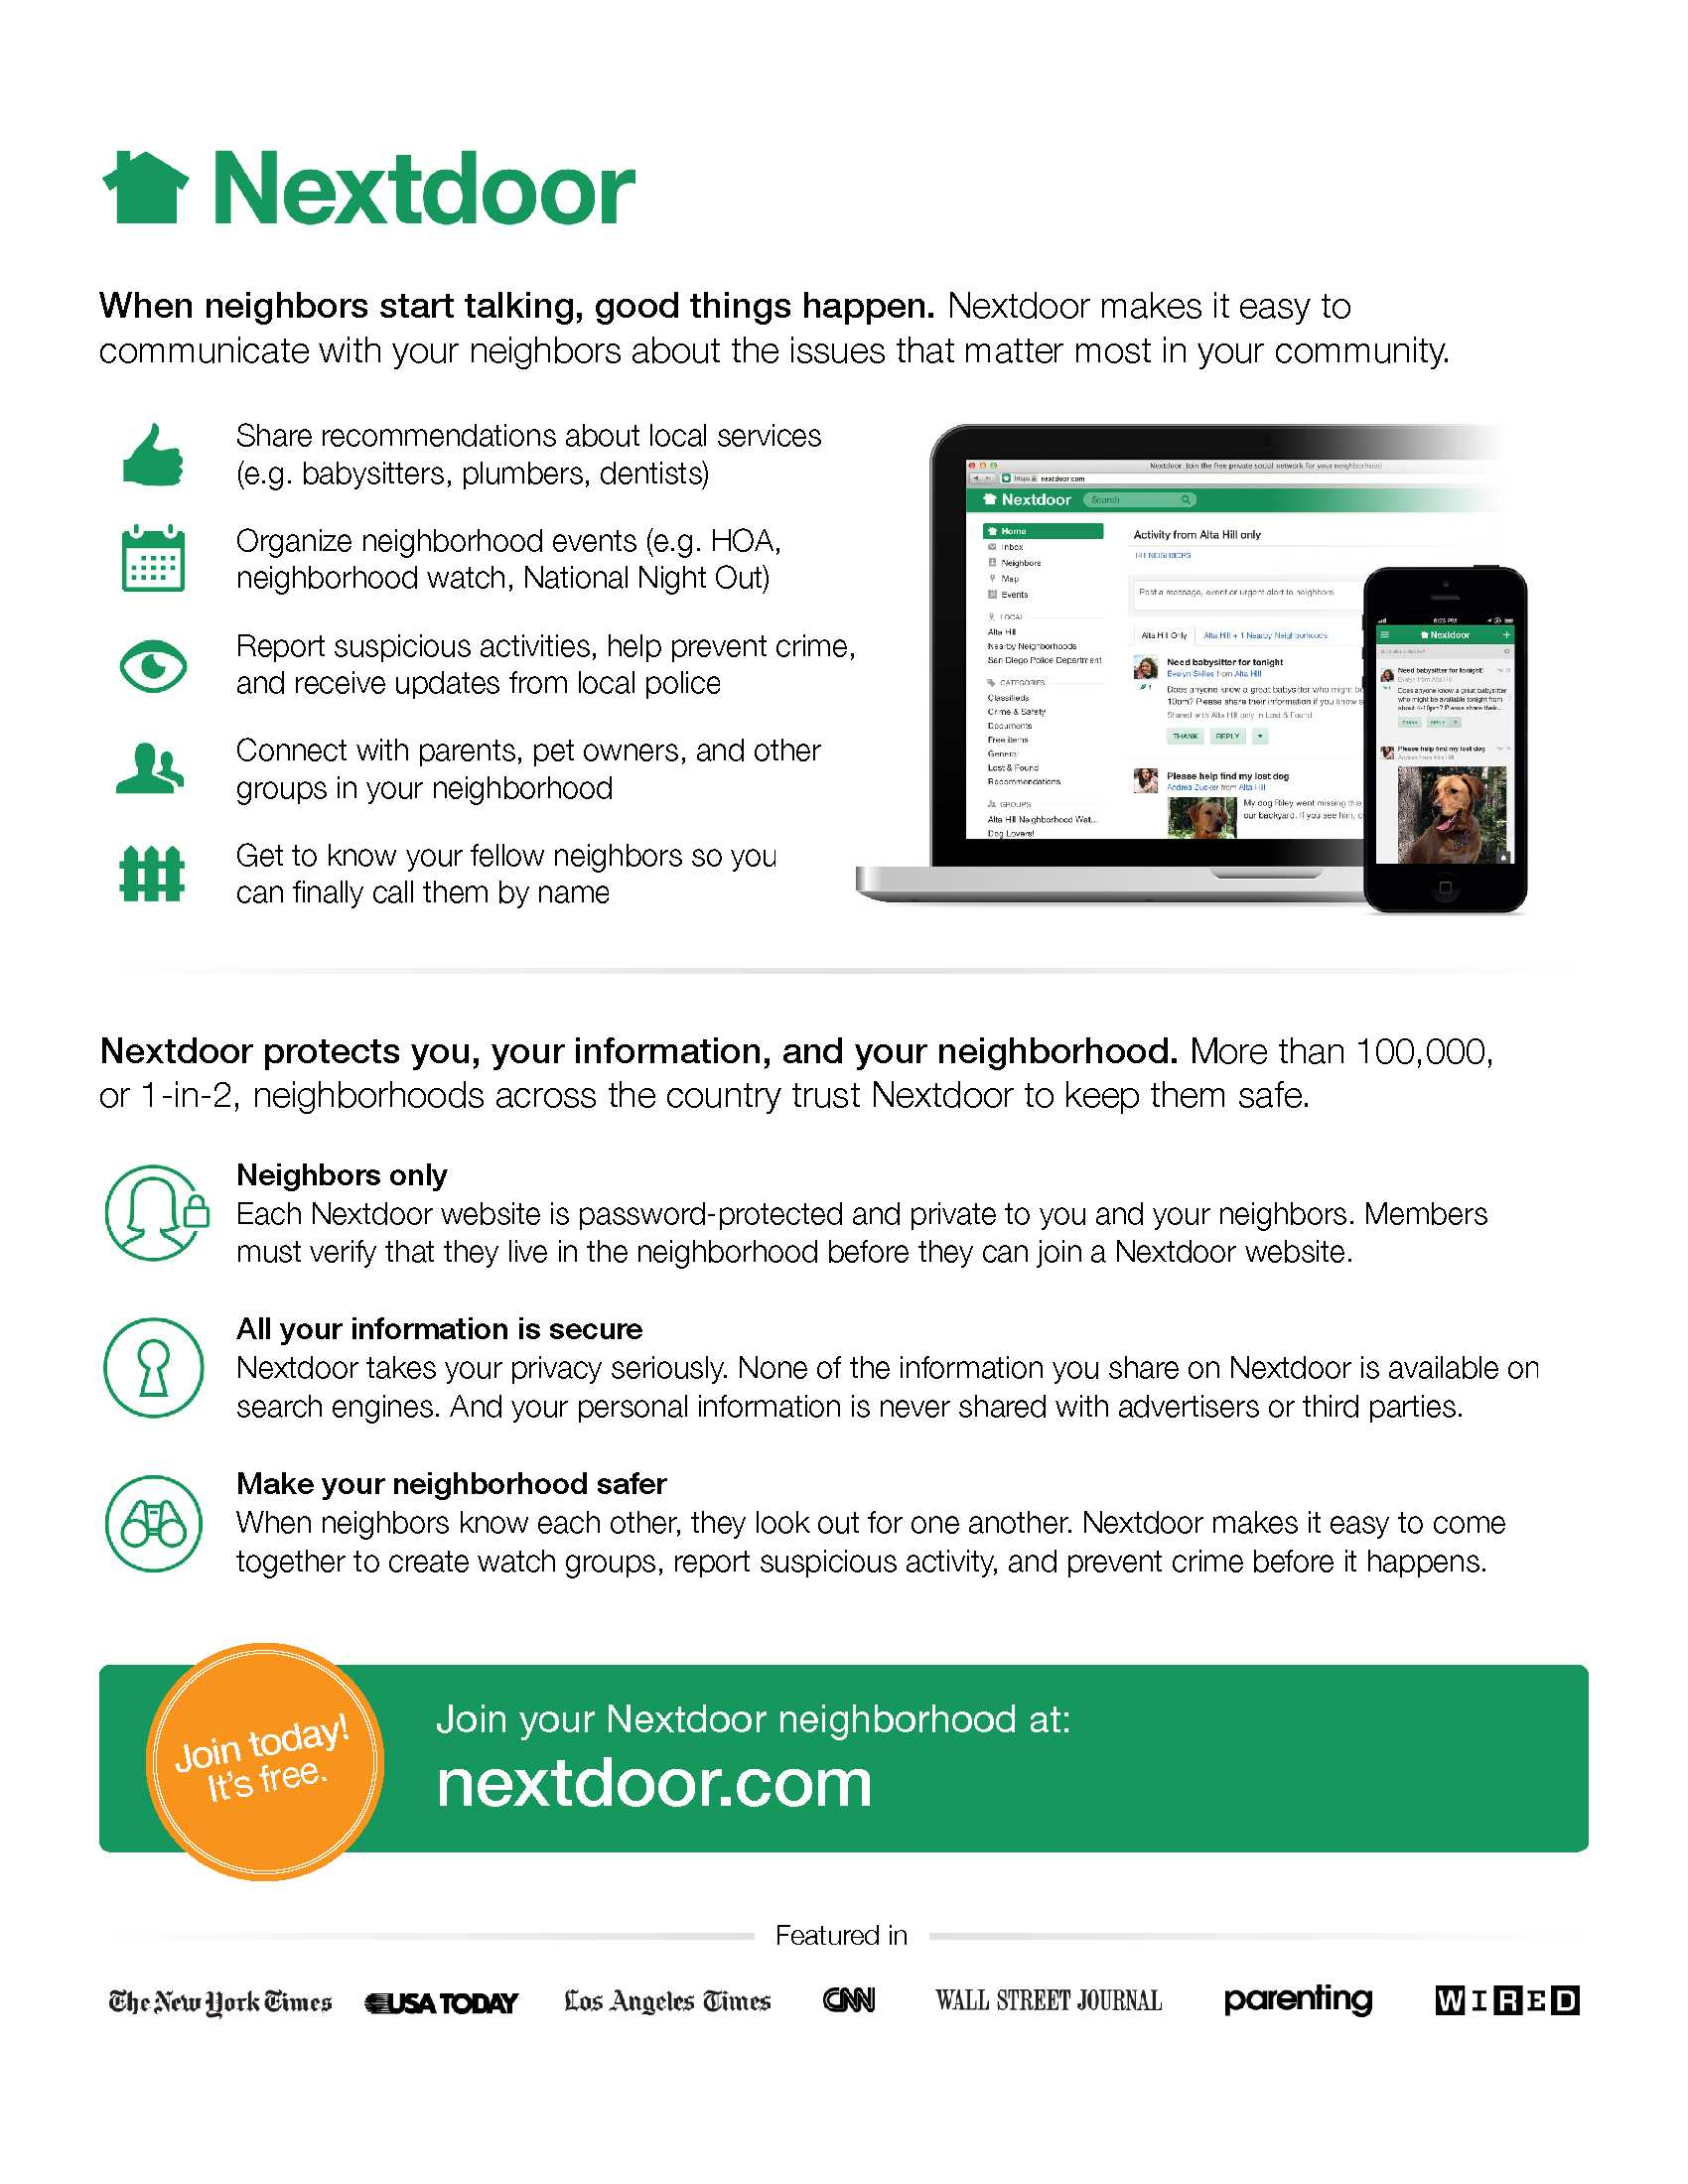 Indiana elkhart county bristol - Those Interested In Joining Their Neighborhood S Nextdoor Website Can Visit Www Nextdoor Com And Enter Their Address If Residents Have Questions About